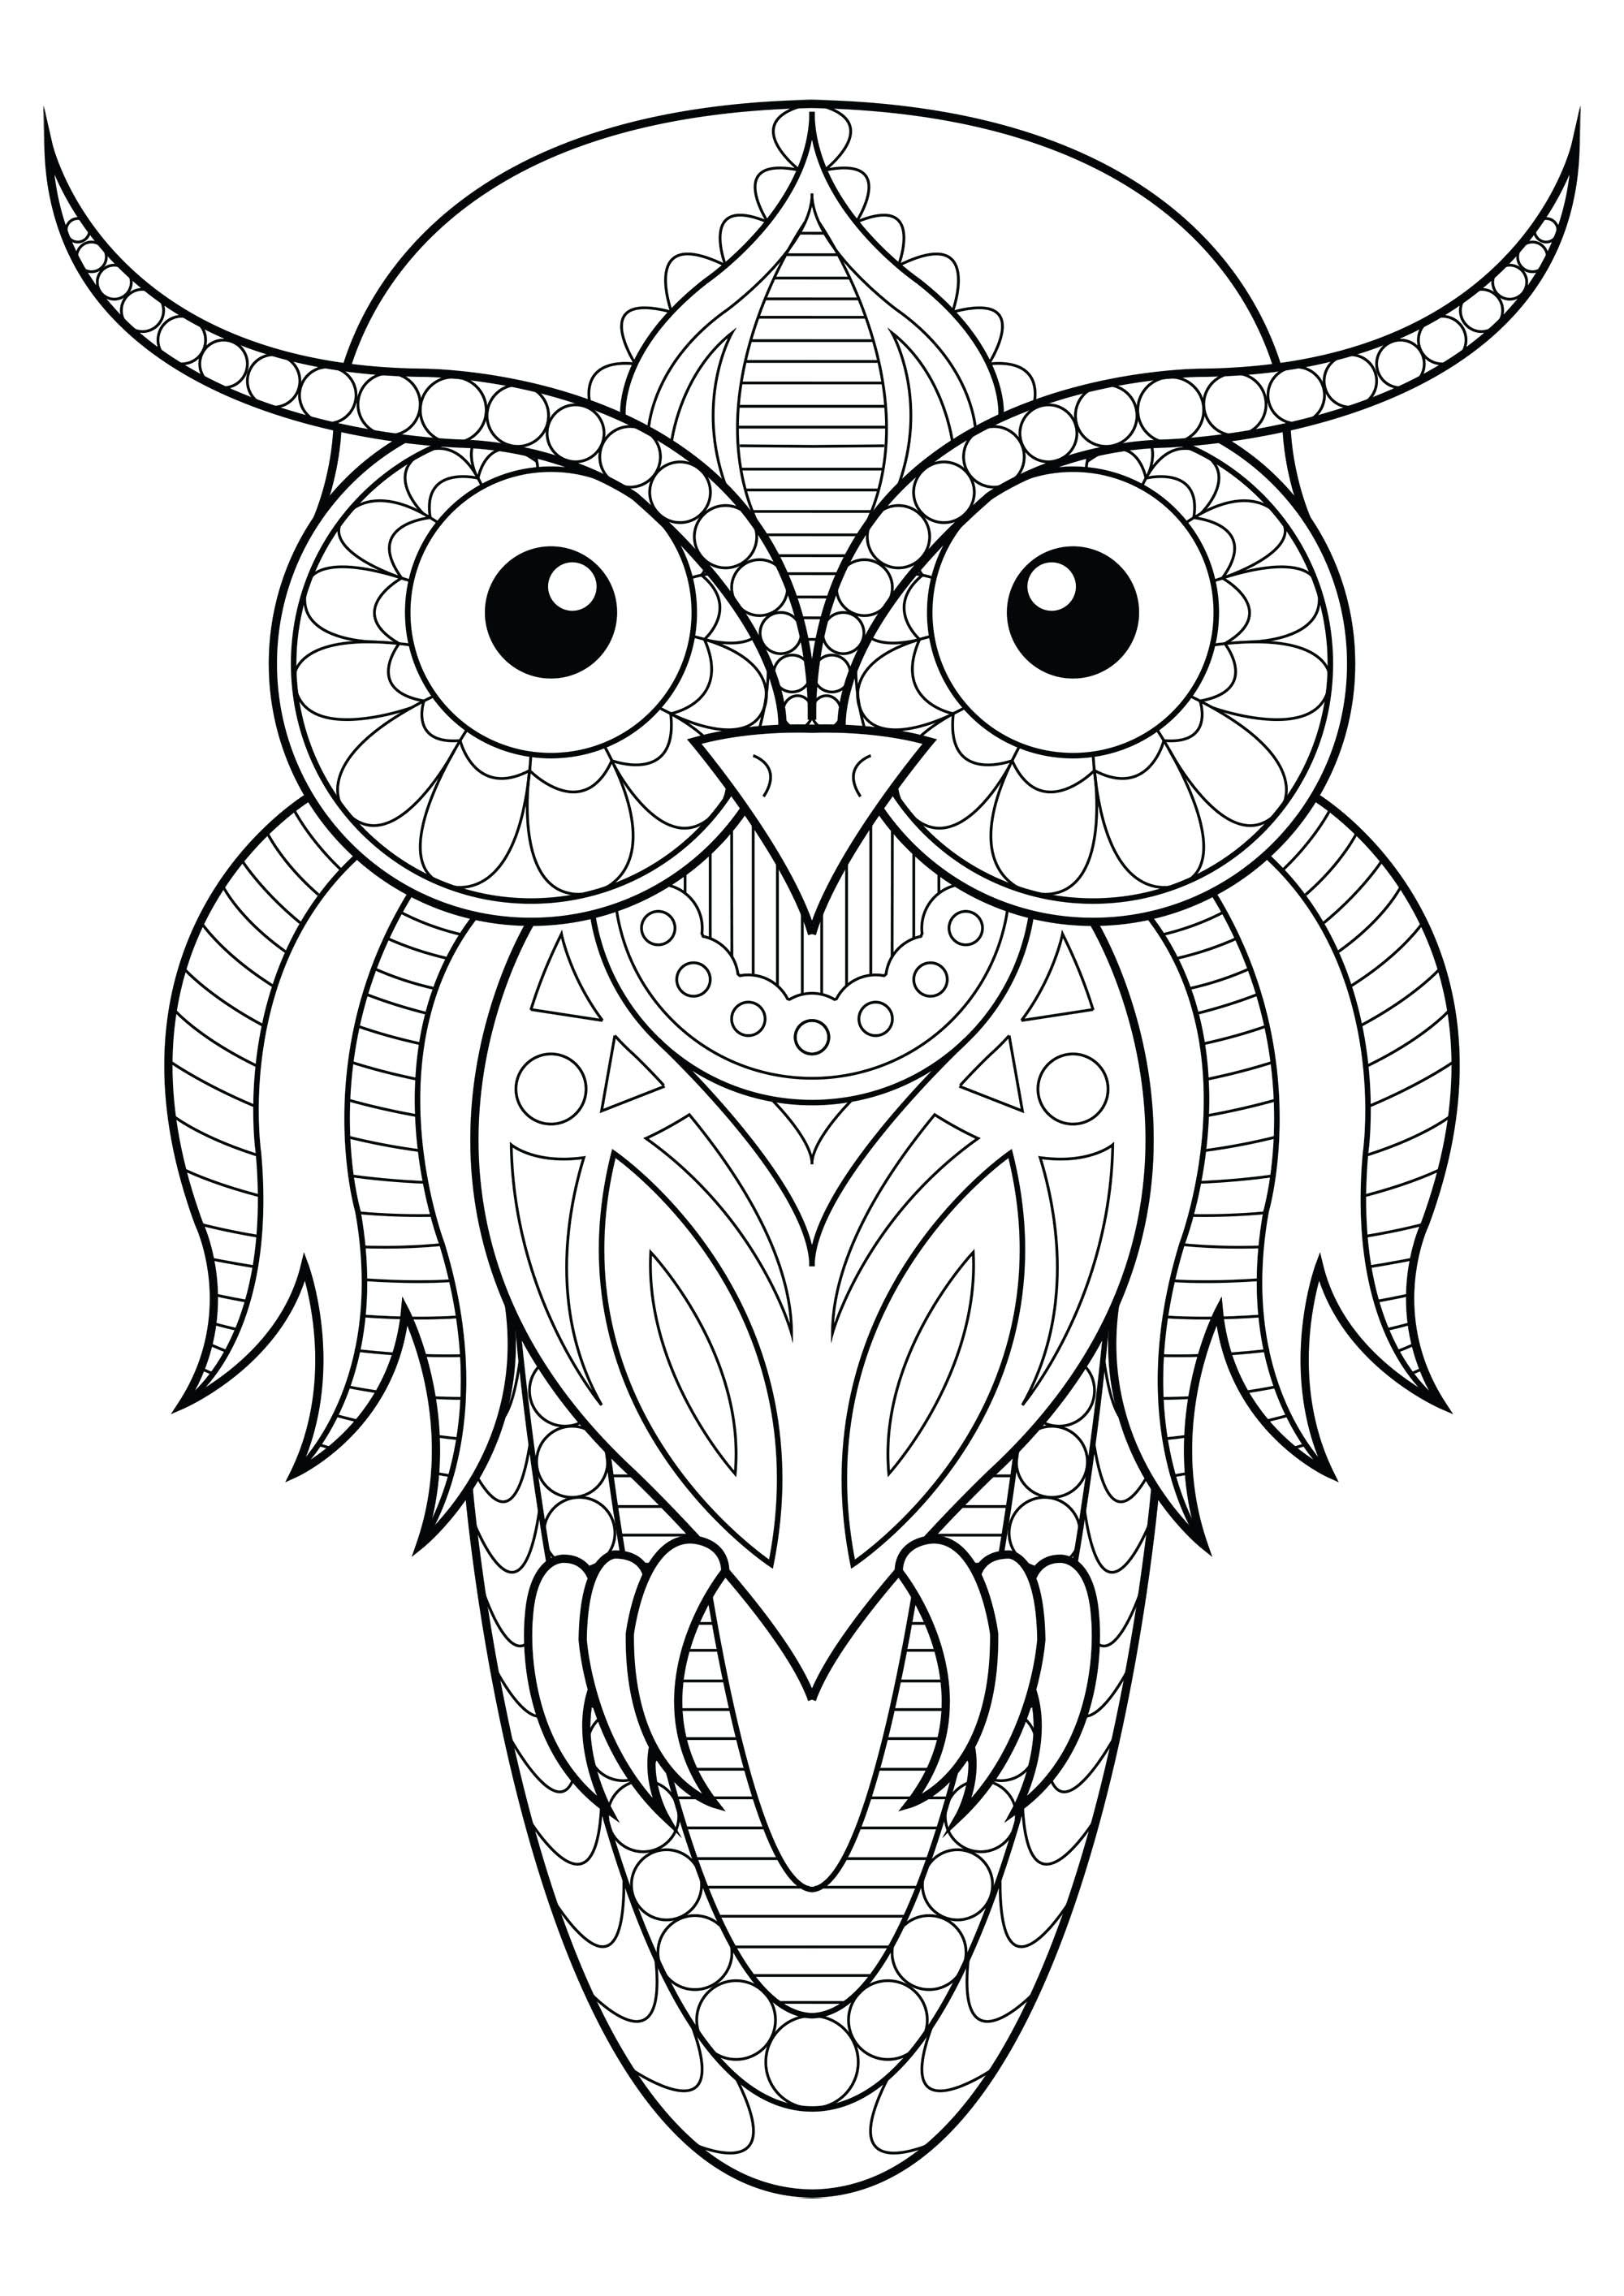 Color This Simple Owl With Beautiful Patterns Color This Simple Owl With Beautiful Patterns Owl Coloring Pages Geometric Coloring Pages Pattern Coloring Pages